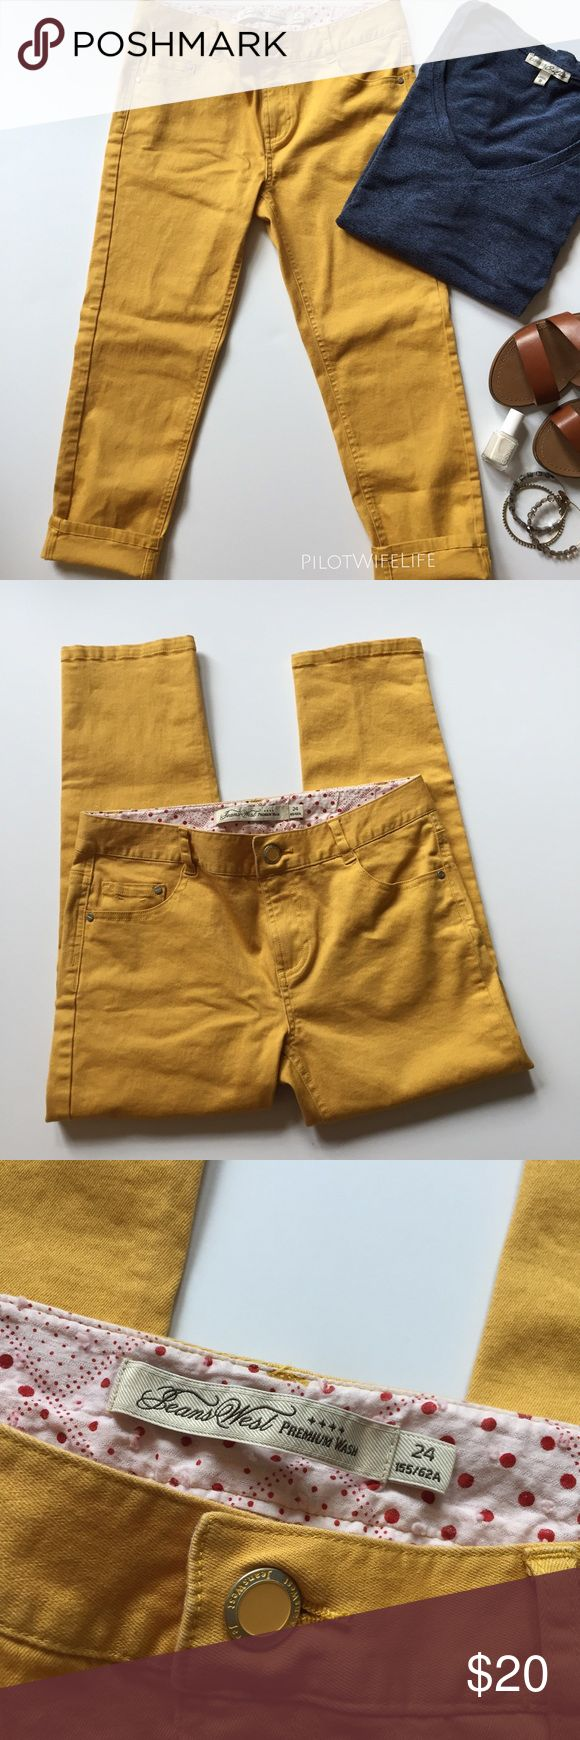 """Marigold Cropped Skinny Jeans Marigold mustard colored cropped skinny jeans. I picked those up in New Zealand (hence not a well-known American brand) but sadly they no longer fit. I only wore them 2 or 3 times. Inseam is 21.5"""". Excellent condition. Some stretch in the fabric. Jeans West Jeans Ankle & Cropped"""